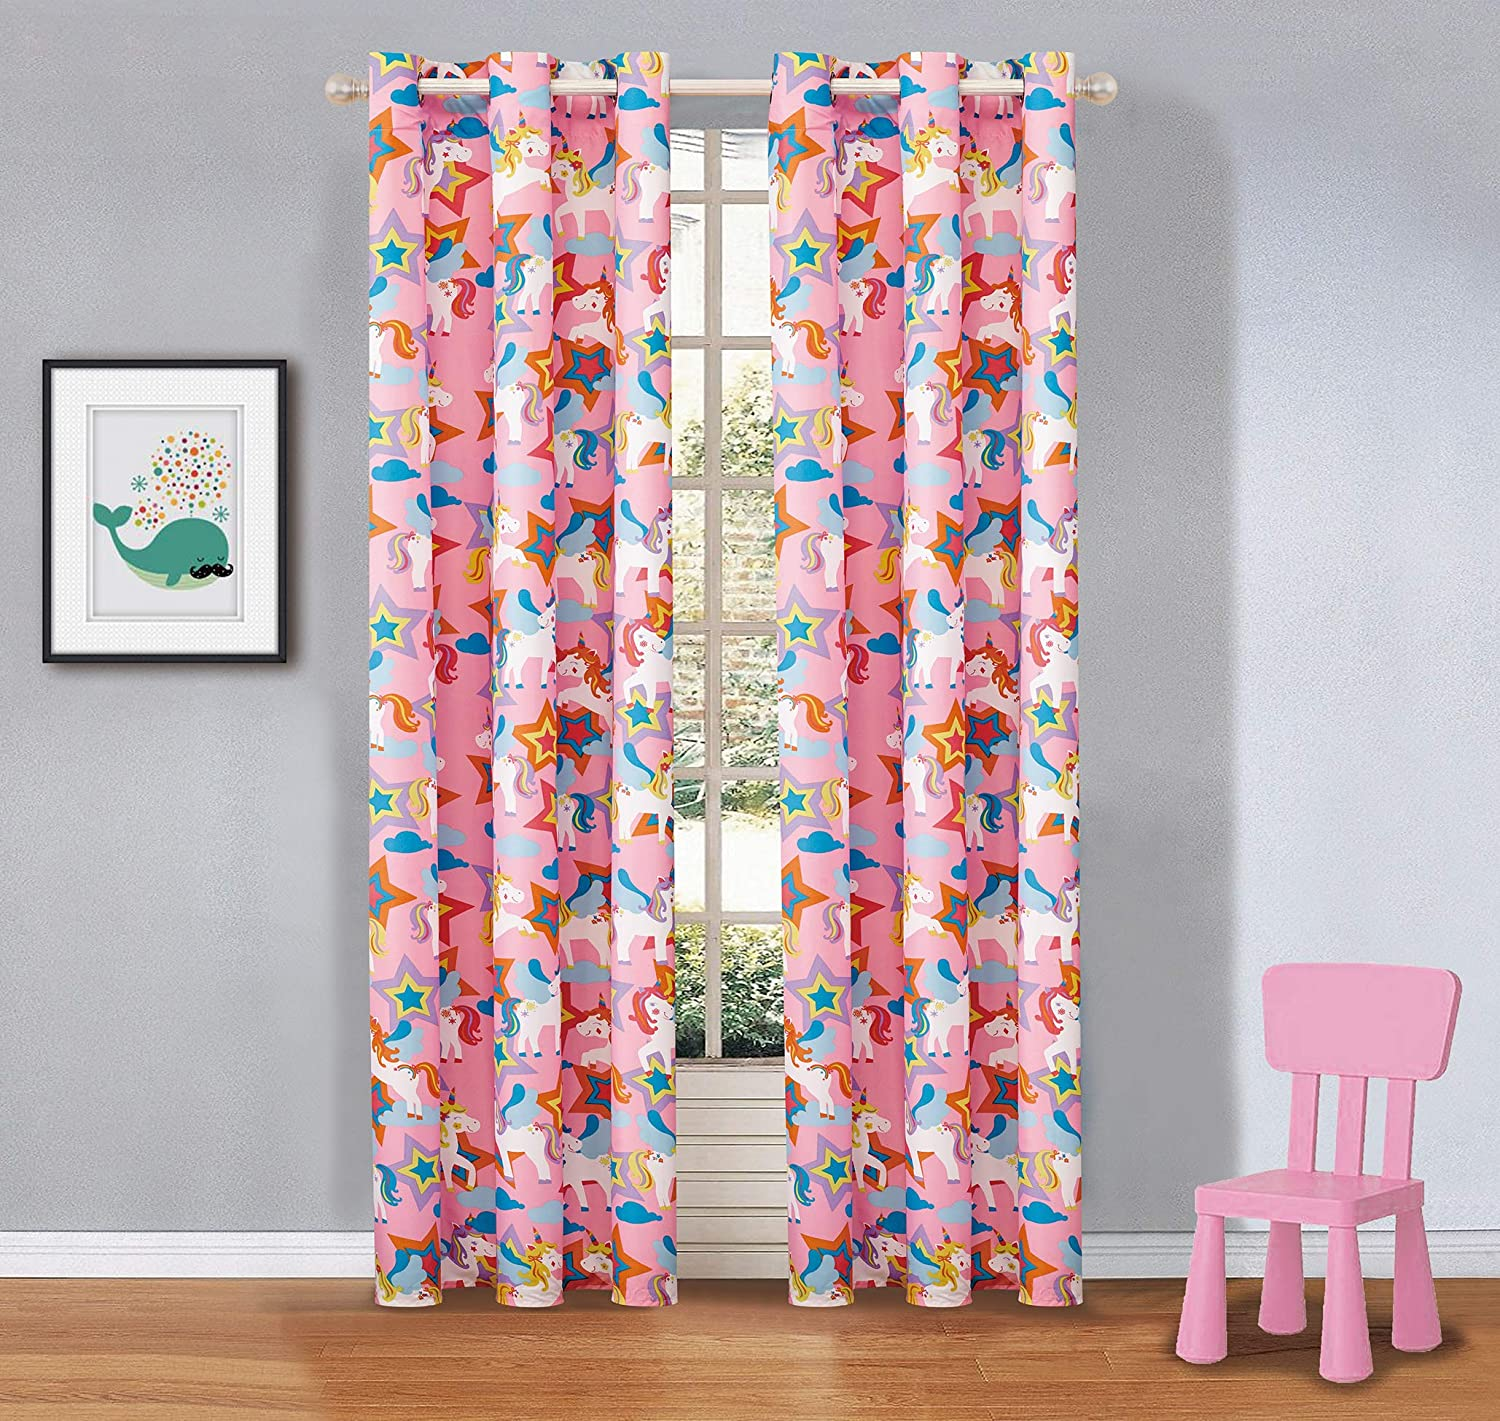 Mk Collection 2 Panel Curtain Set Unicorn Pink Purple White Blue Orange Set New